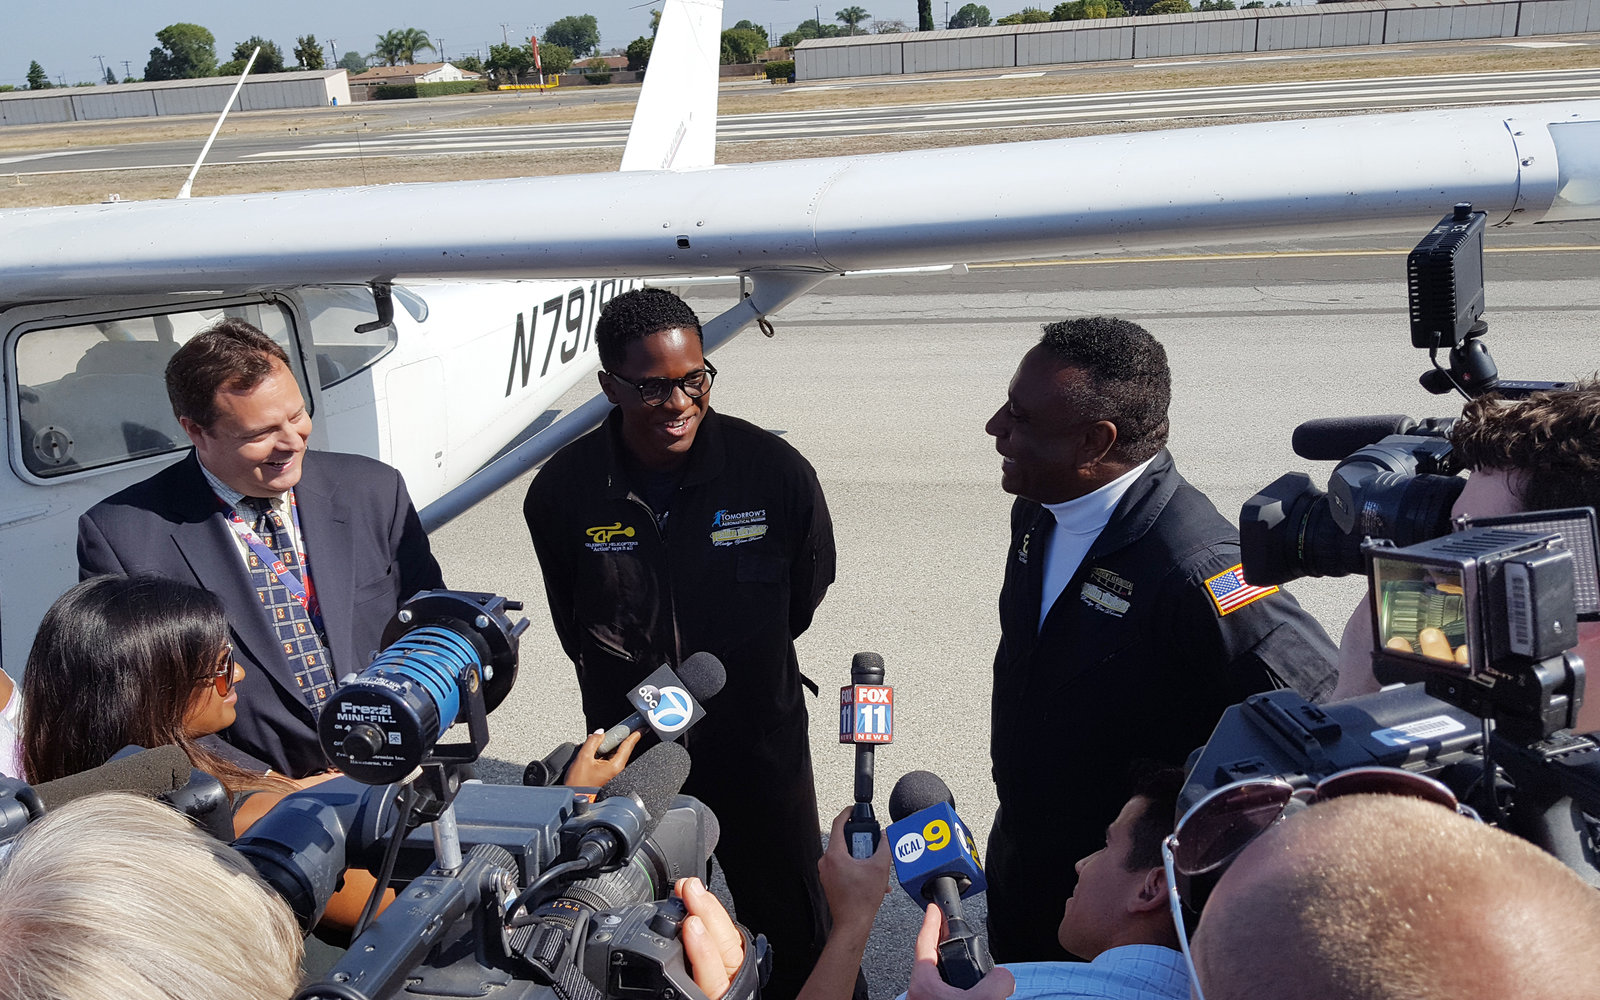 16-Year-Old Becomes Youngest Black Pilot to Cross the Continental U.S.